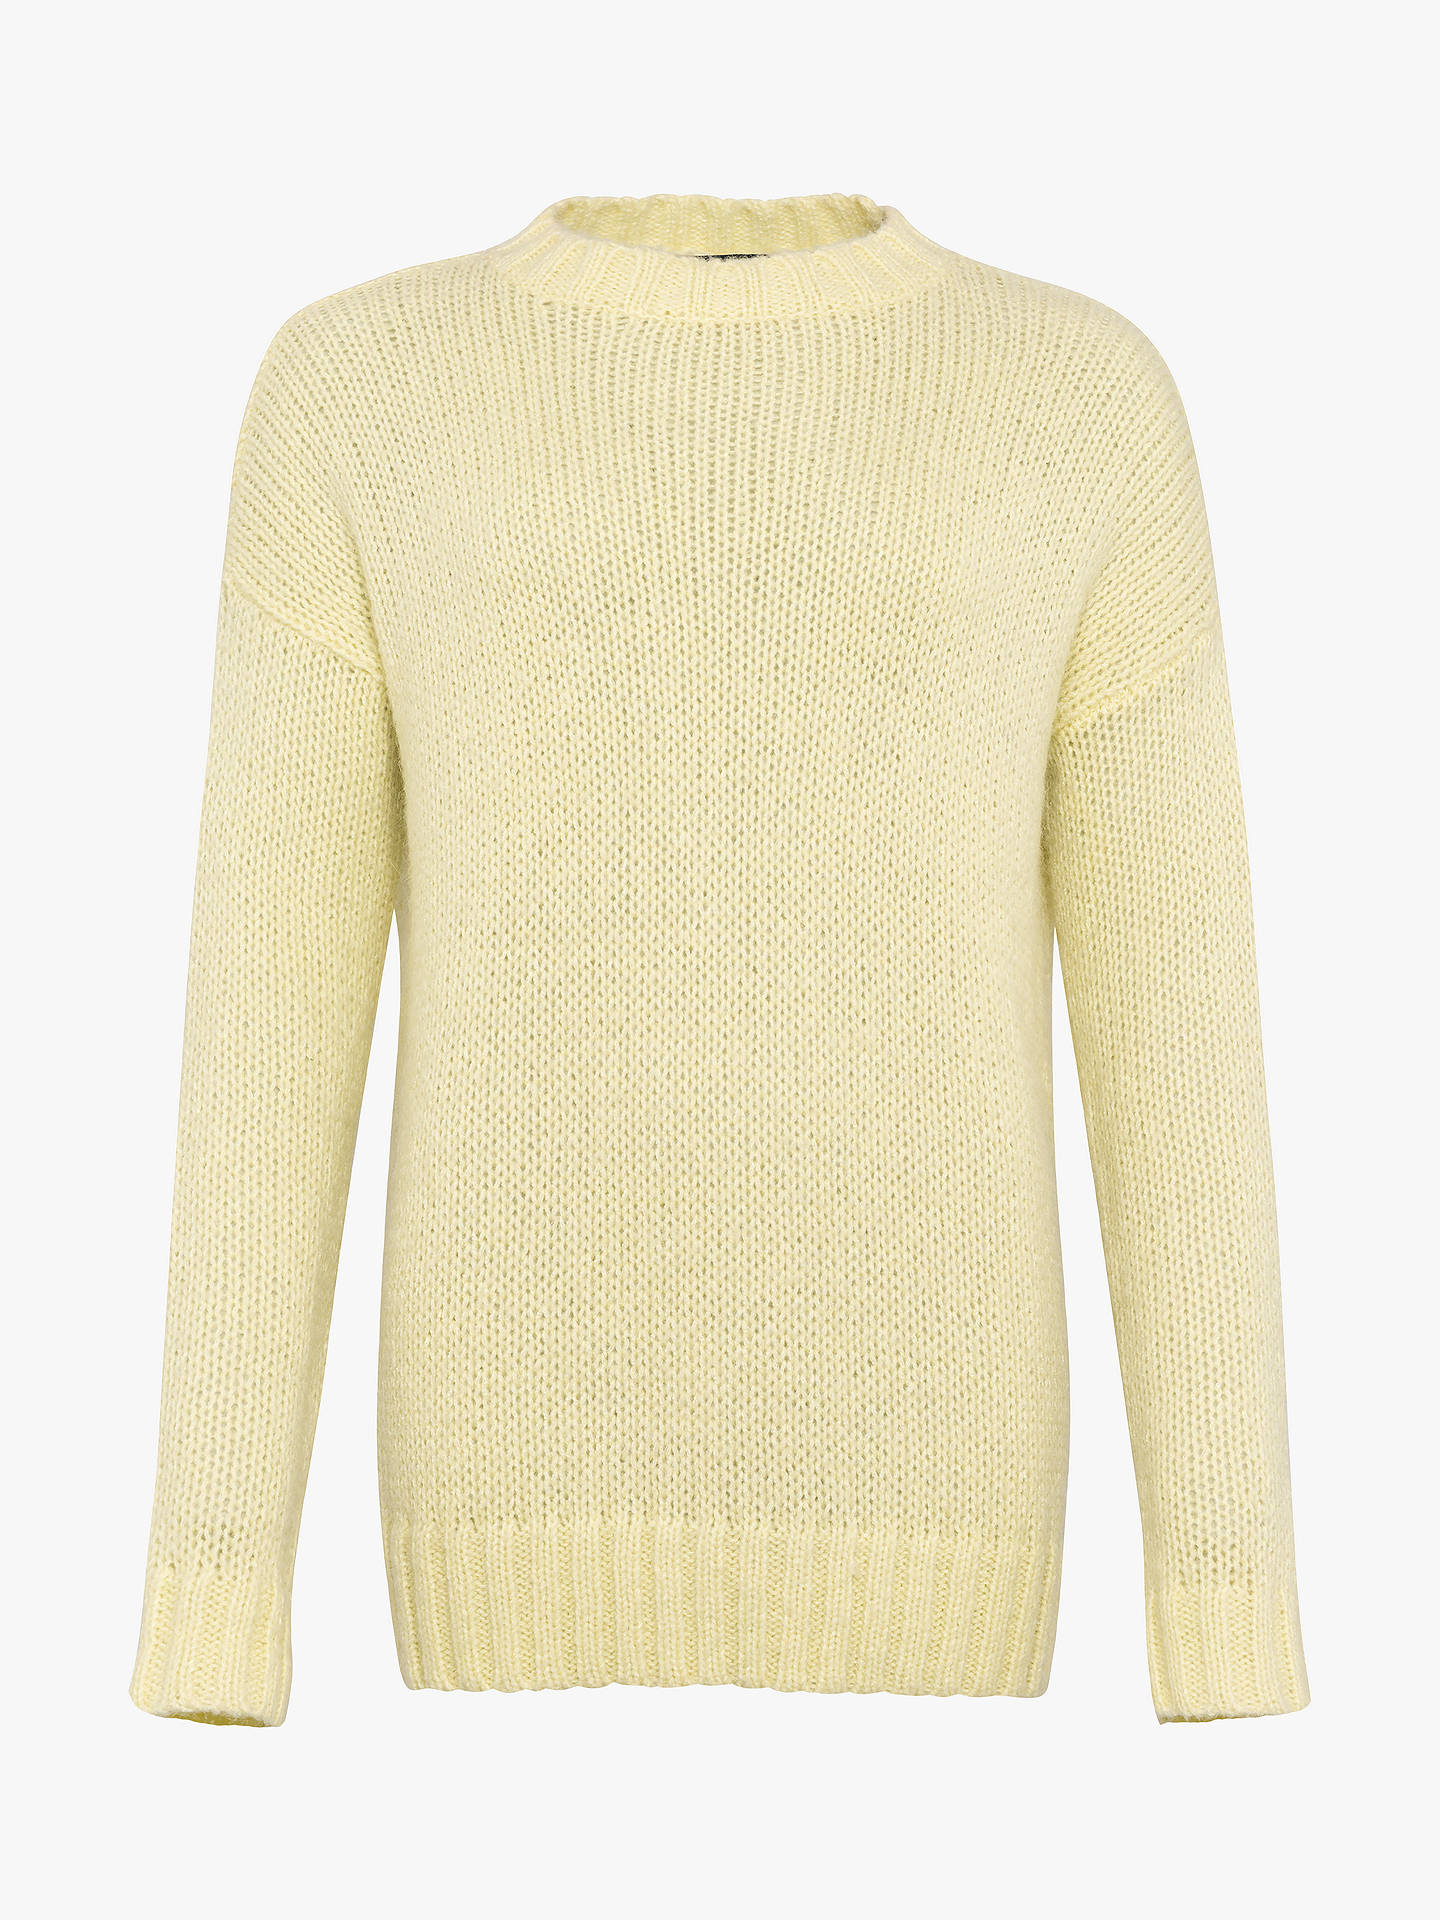 Buy French Connection Crew Neck Jumper, Egg Nog, M Online at johnlewis.com